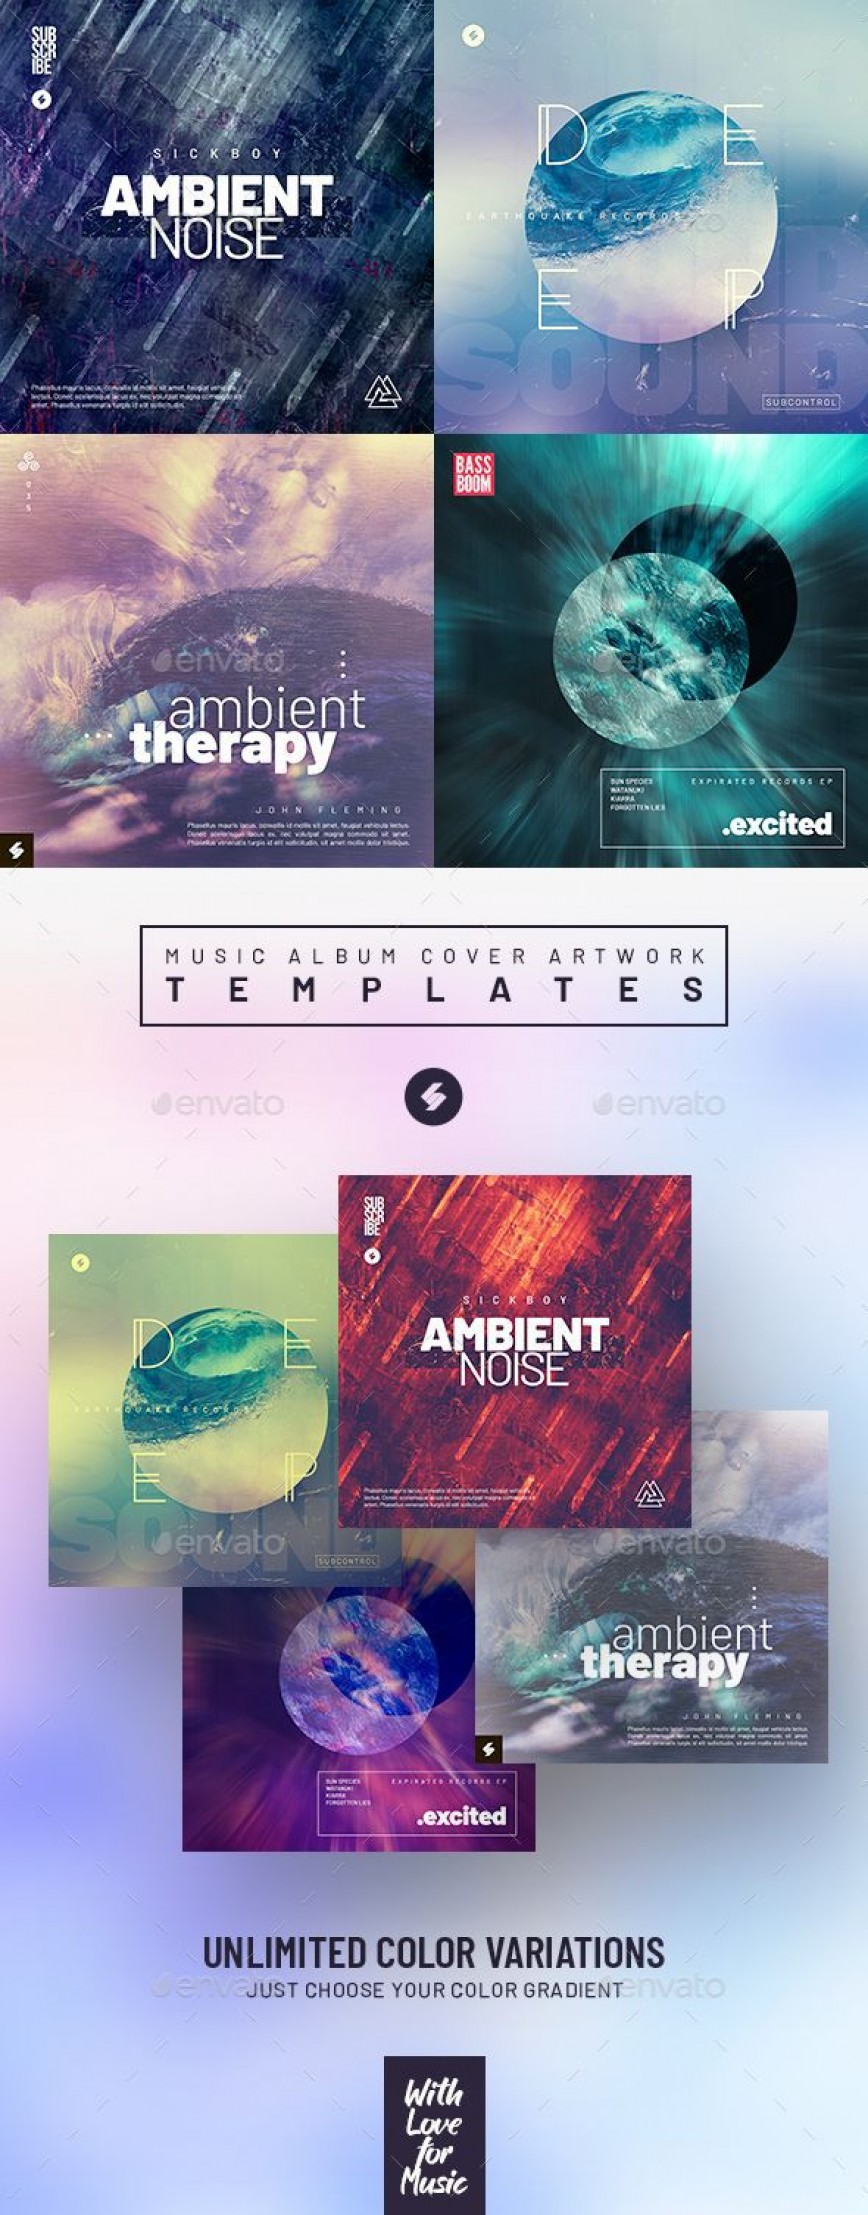 000 Astounding Music Cd Cover Design Template Free Download Photo 868